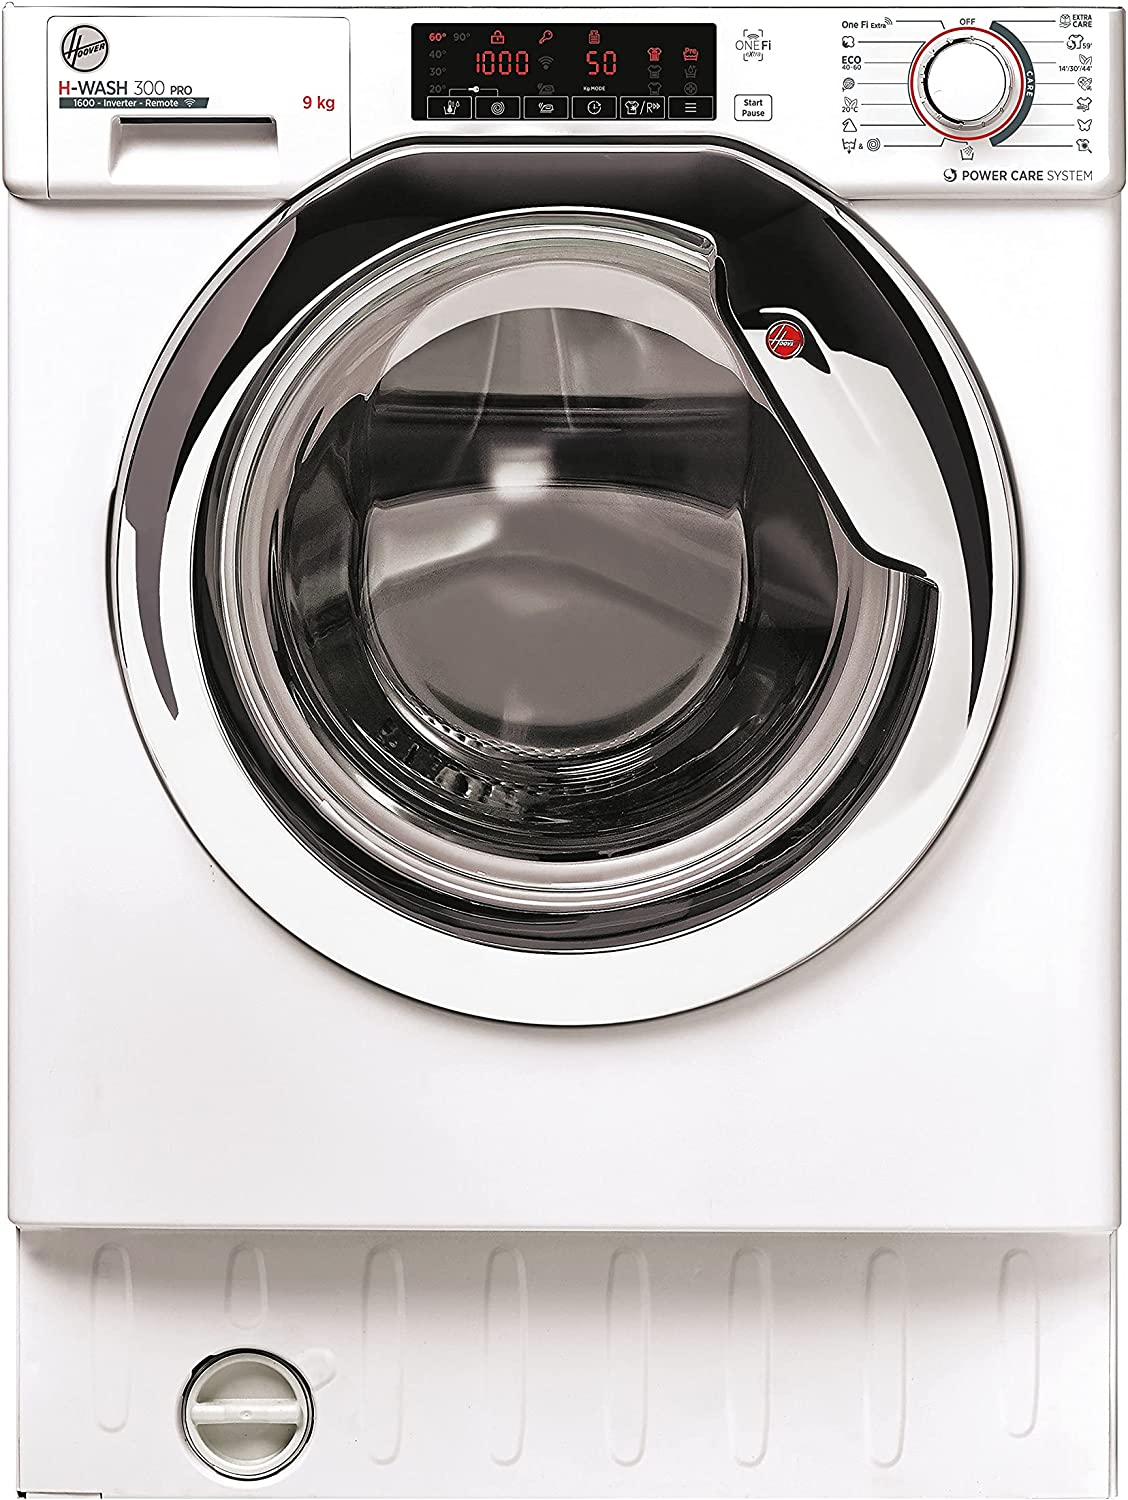 Hoover H-WASH 300 PRO HBDO485TAMCE/1-S, Lavadora integrable 9kg, 1600rpm, Motor Inverter, Wi-Fi, Ciclos Extra Care, All in One 59', Blanco, Clase A